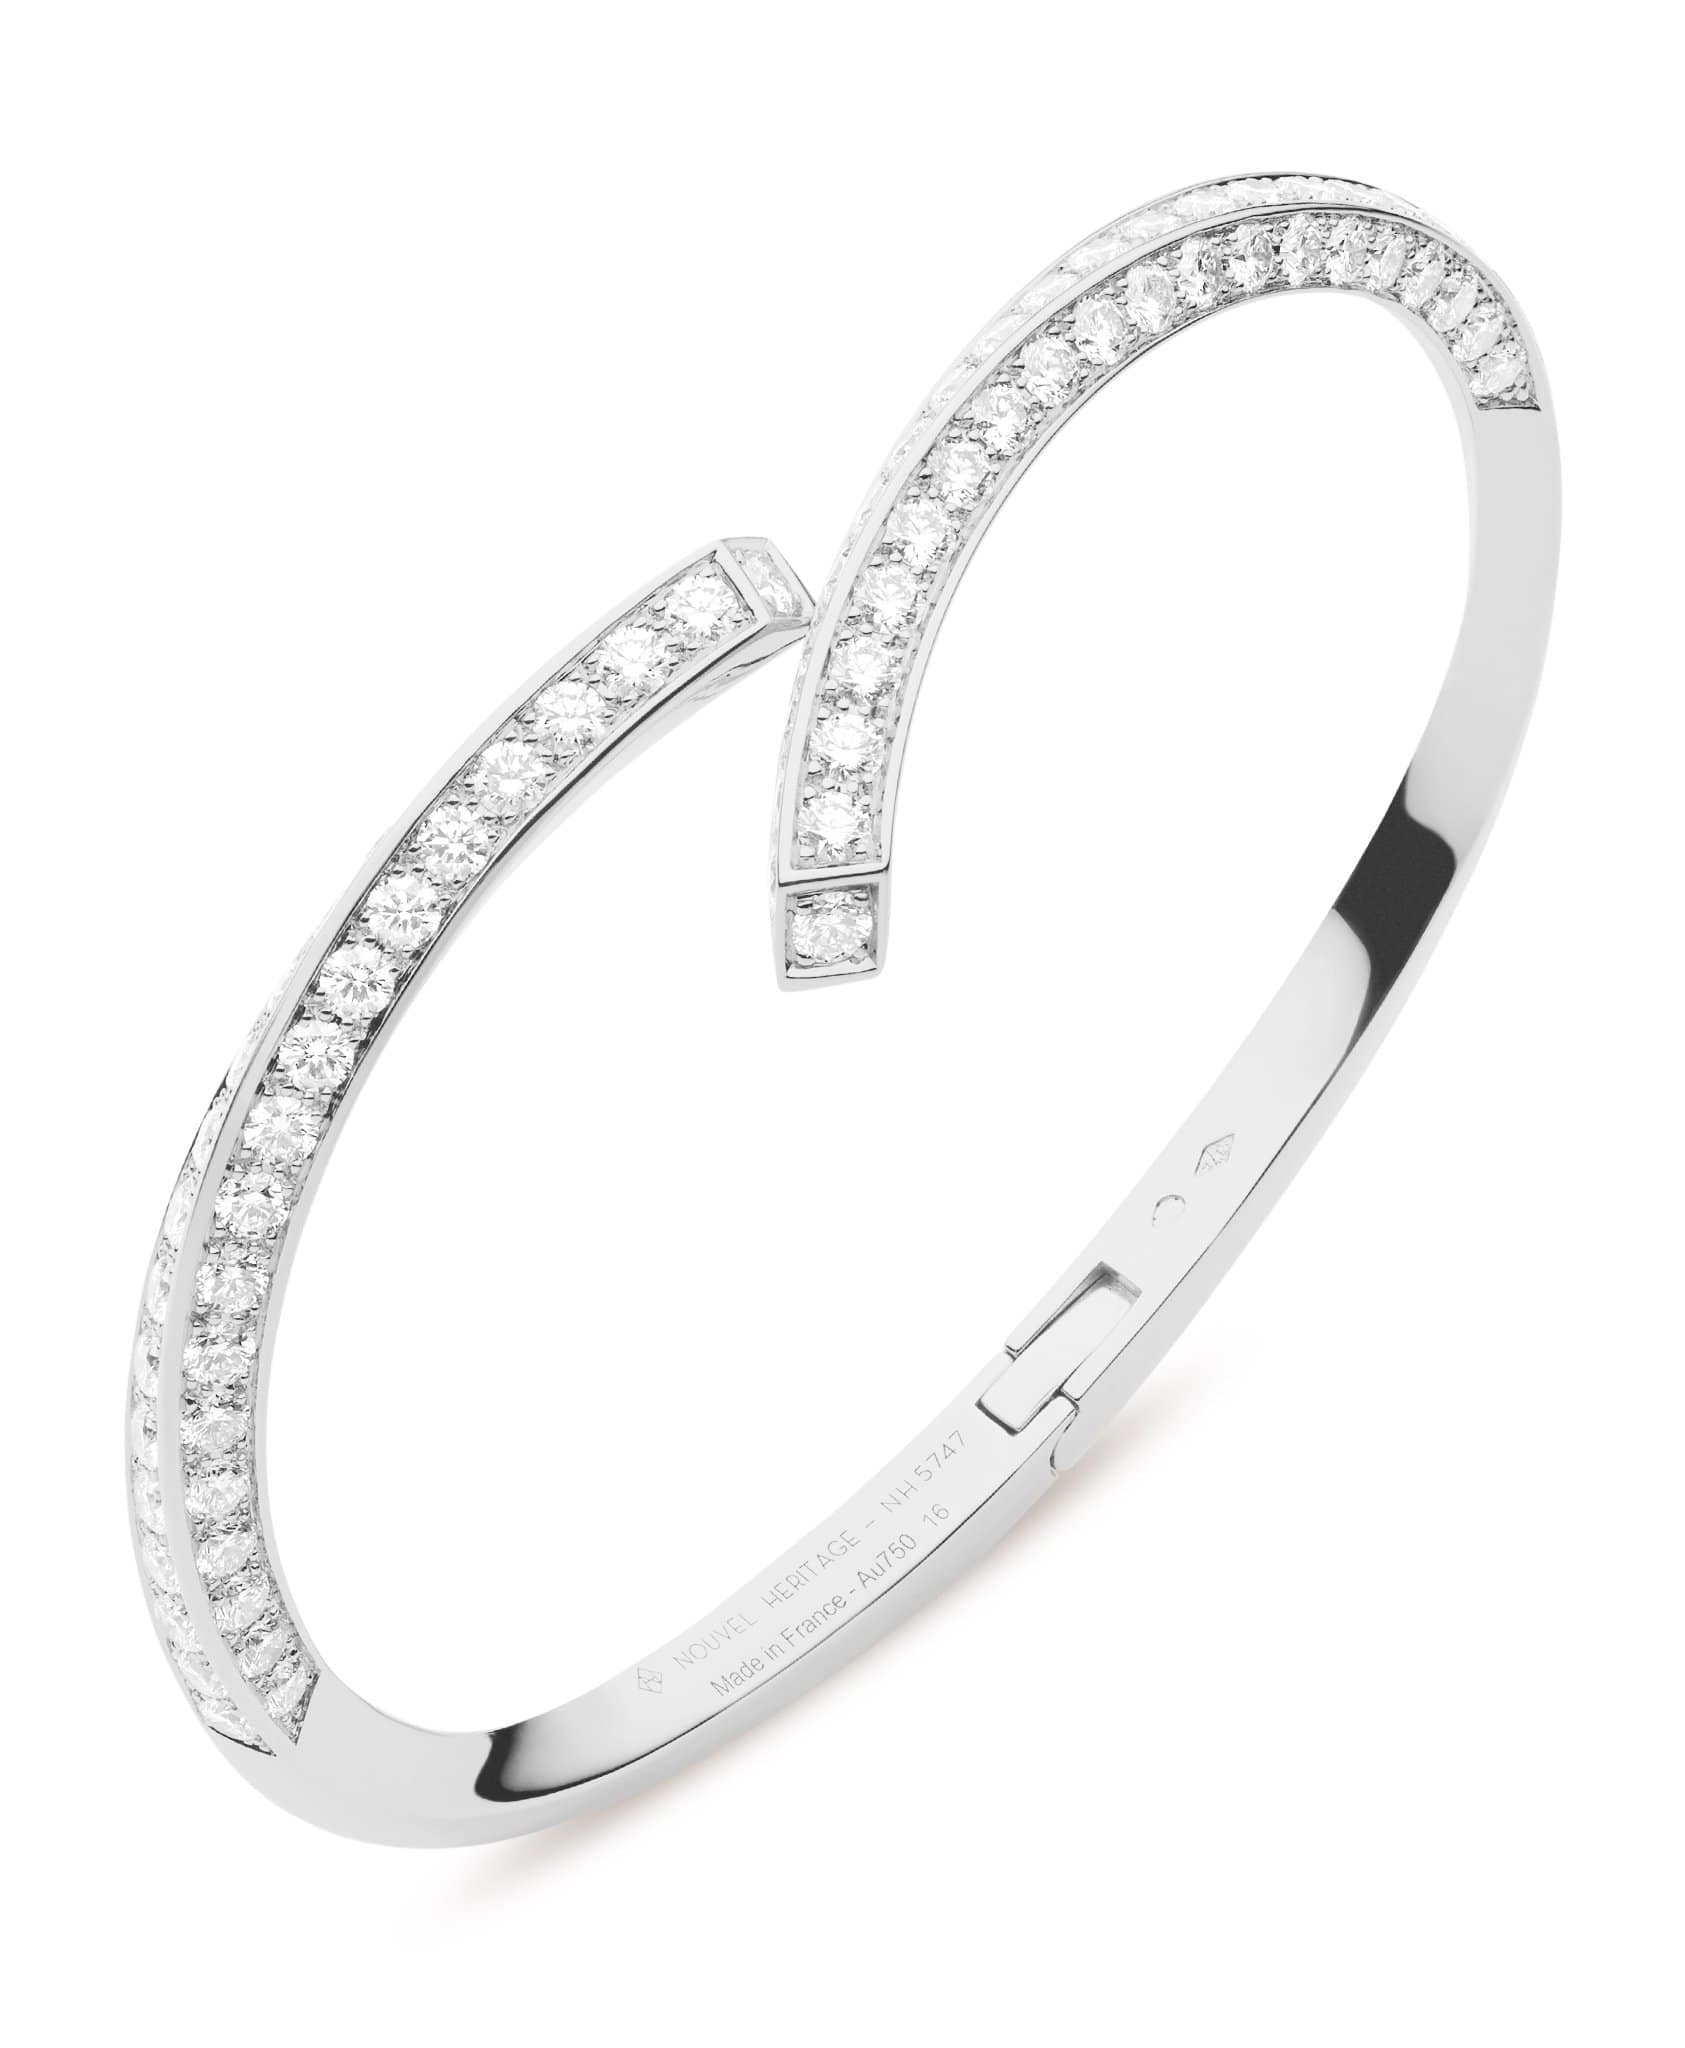 Diamond Thread Bangle: Discover Luxury Fine Jewelry | Nouvel Heritage || White Gold